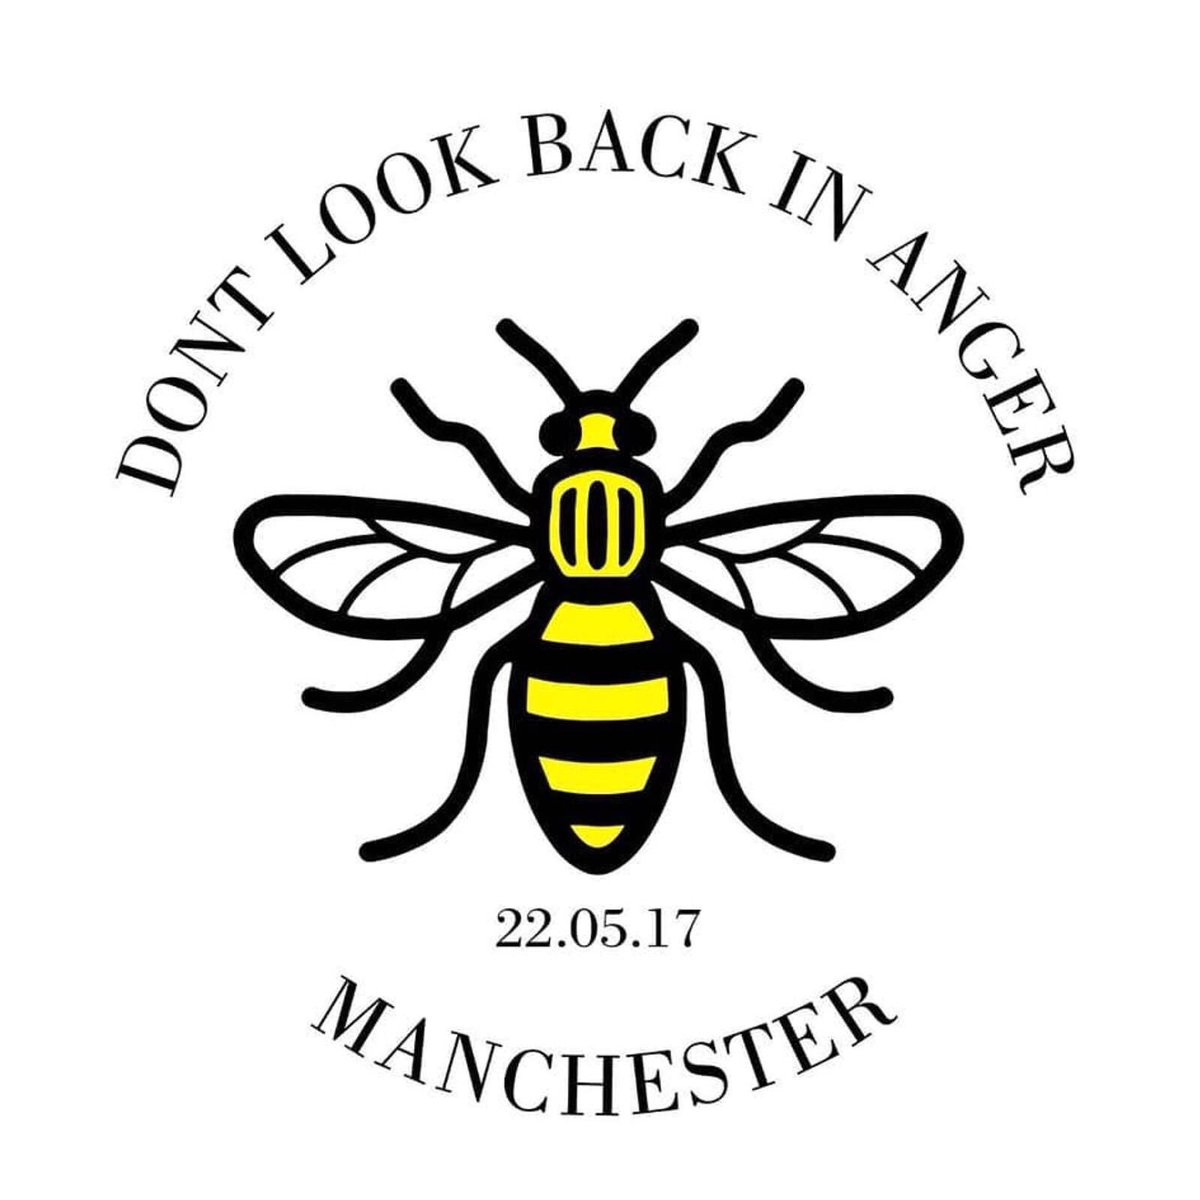 1 year on we remember the 22 people who went to a concert and didn't  return. #Manchester pic.twitter.com/vSnSsNEj36